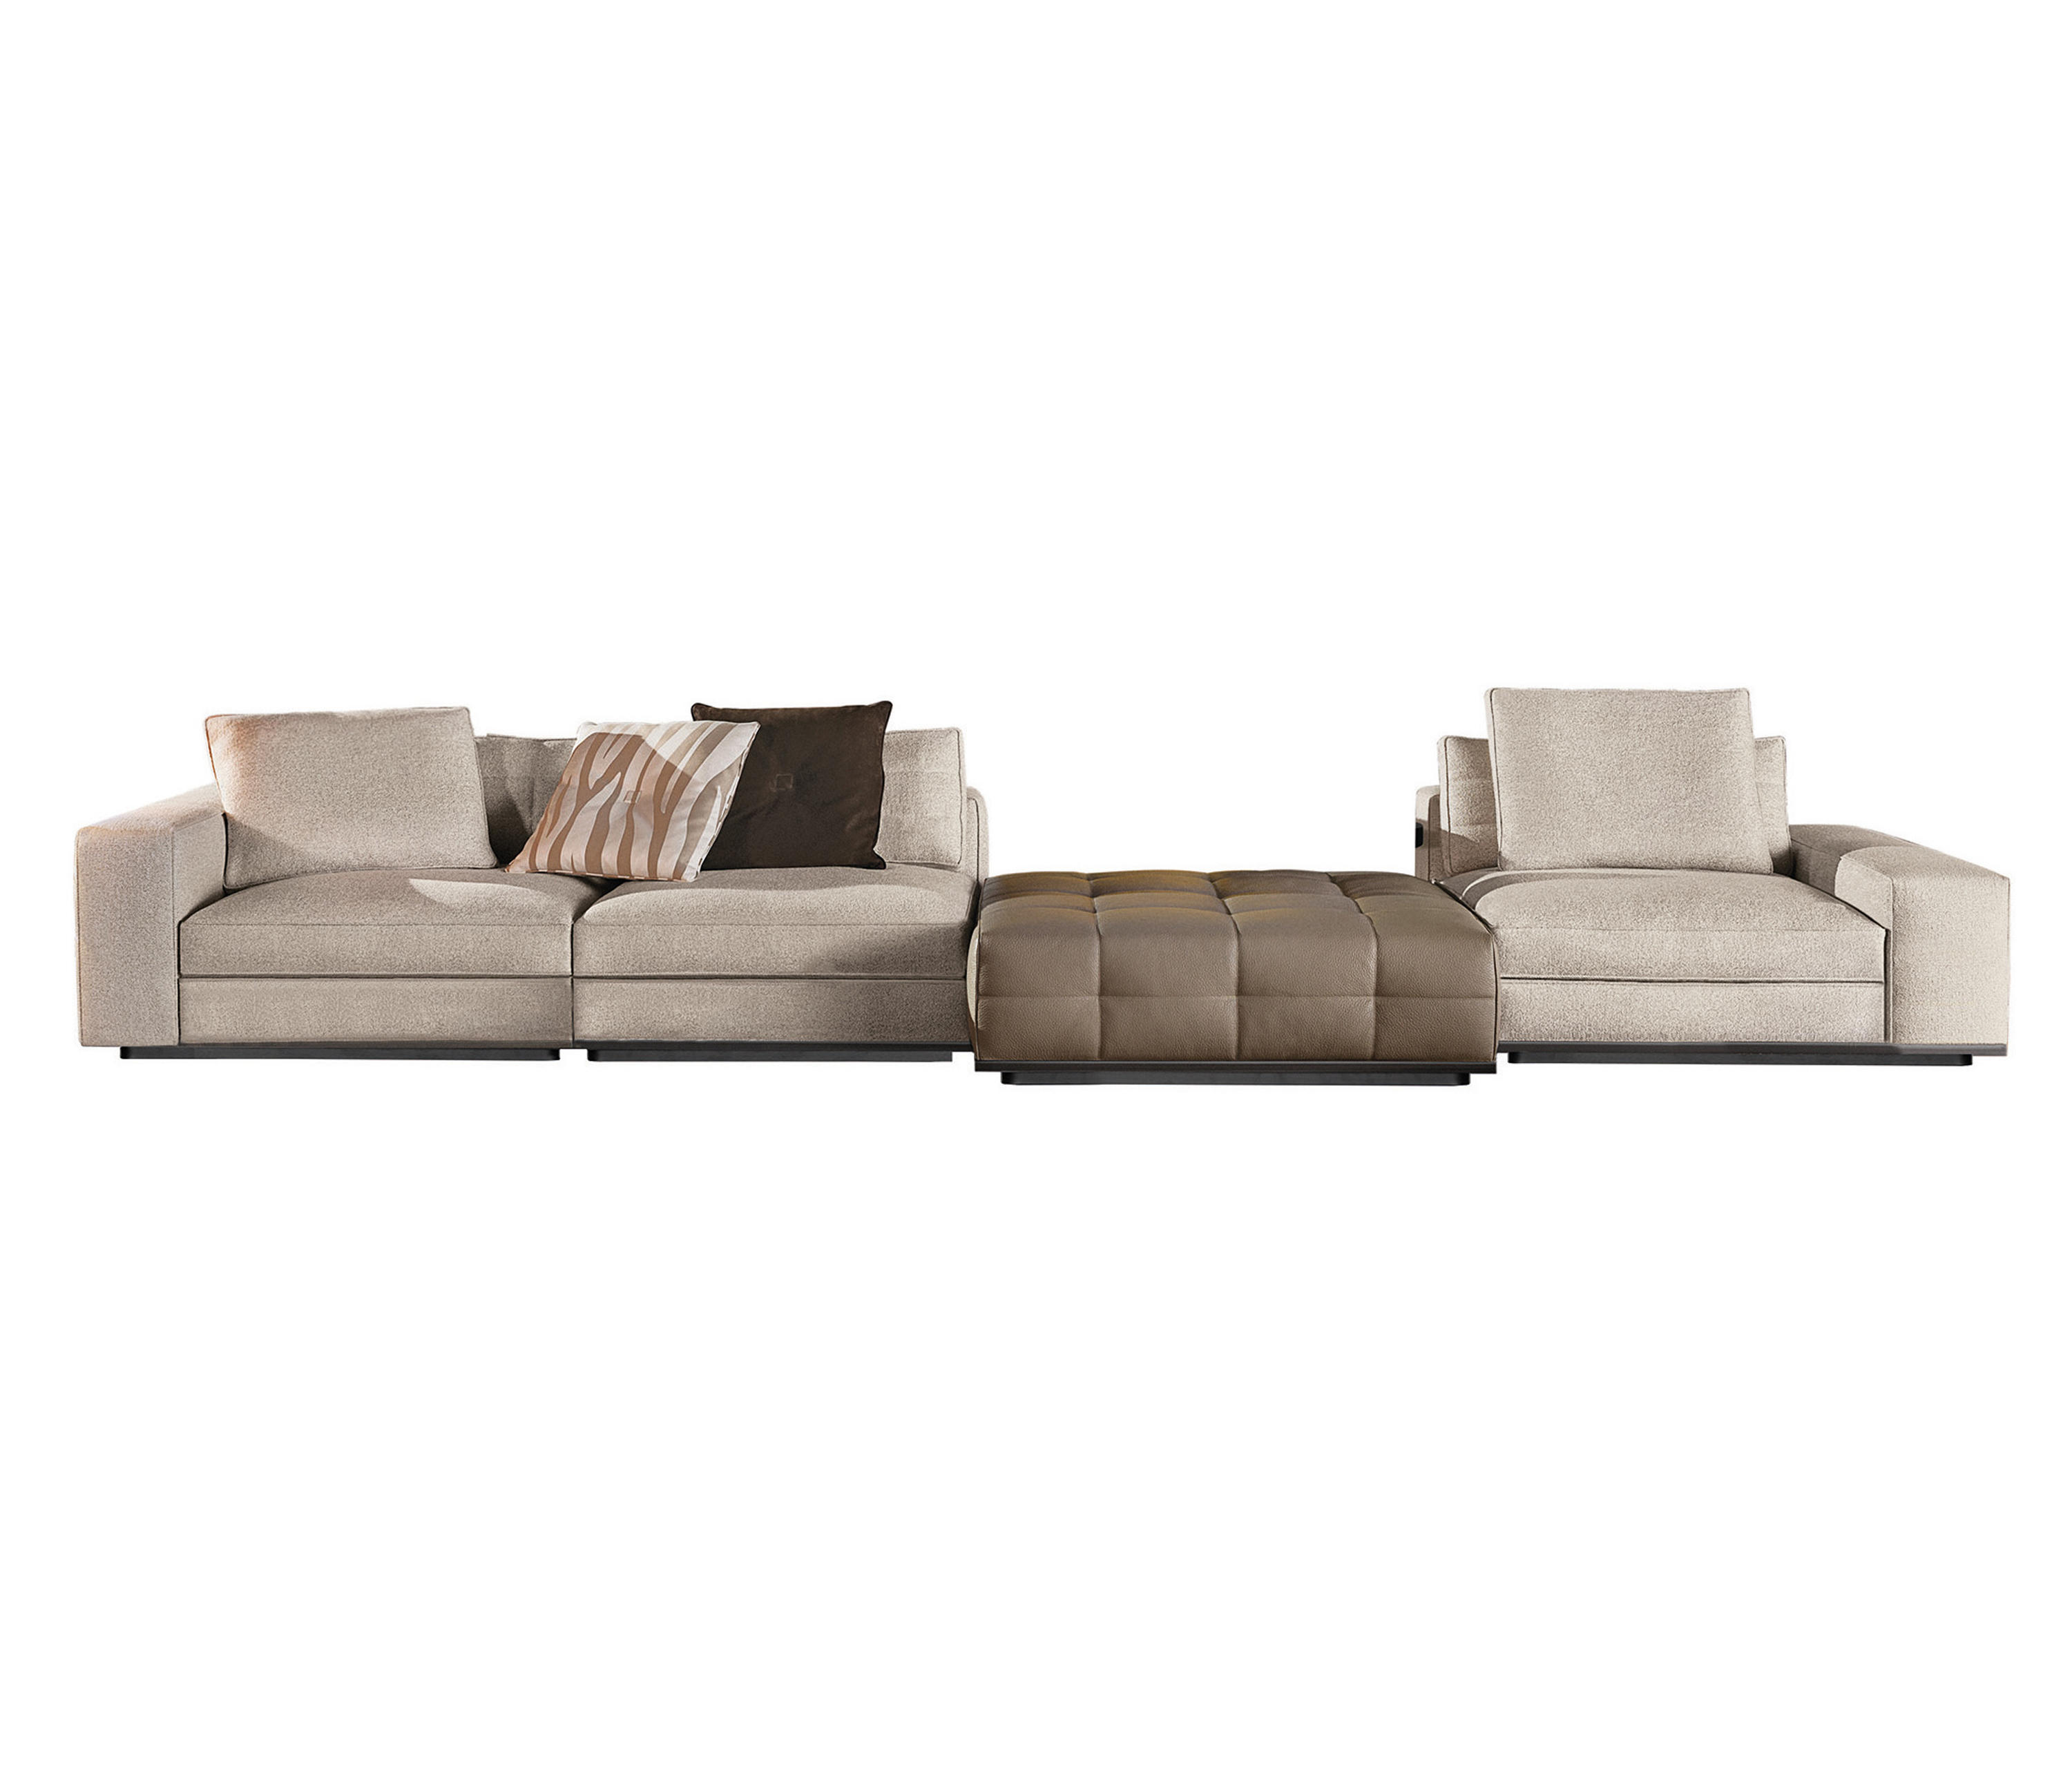 lawrence seating system modular sofa systems from. Black Bedroom Furniture Sets. Home Design Ideas